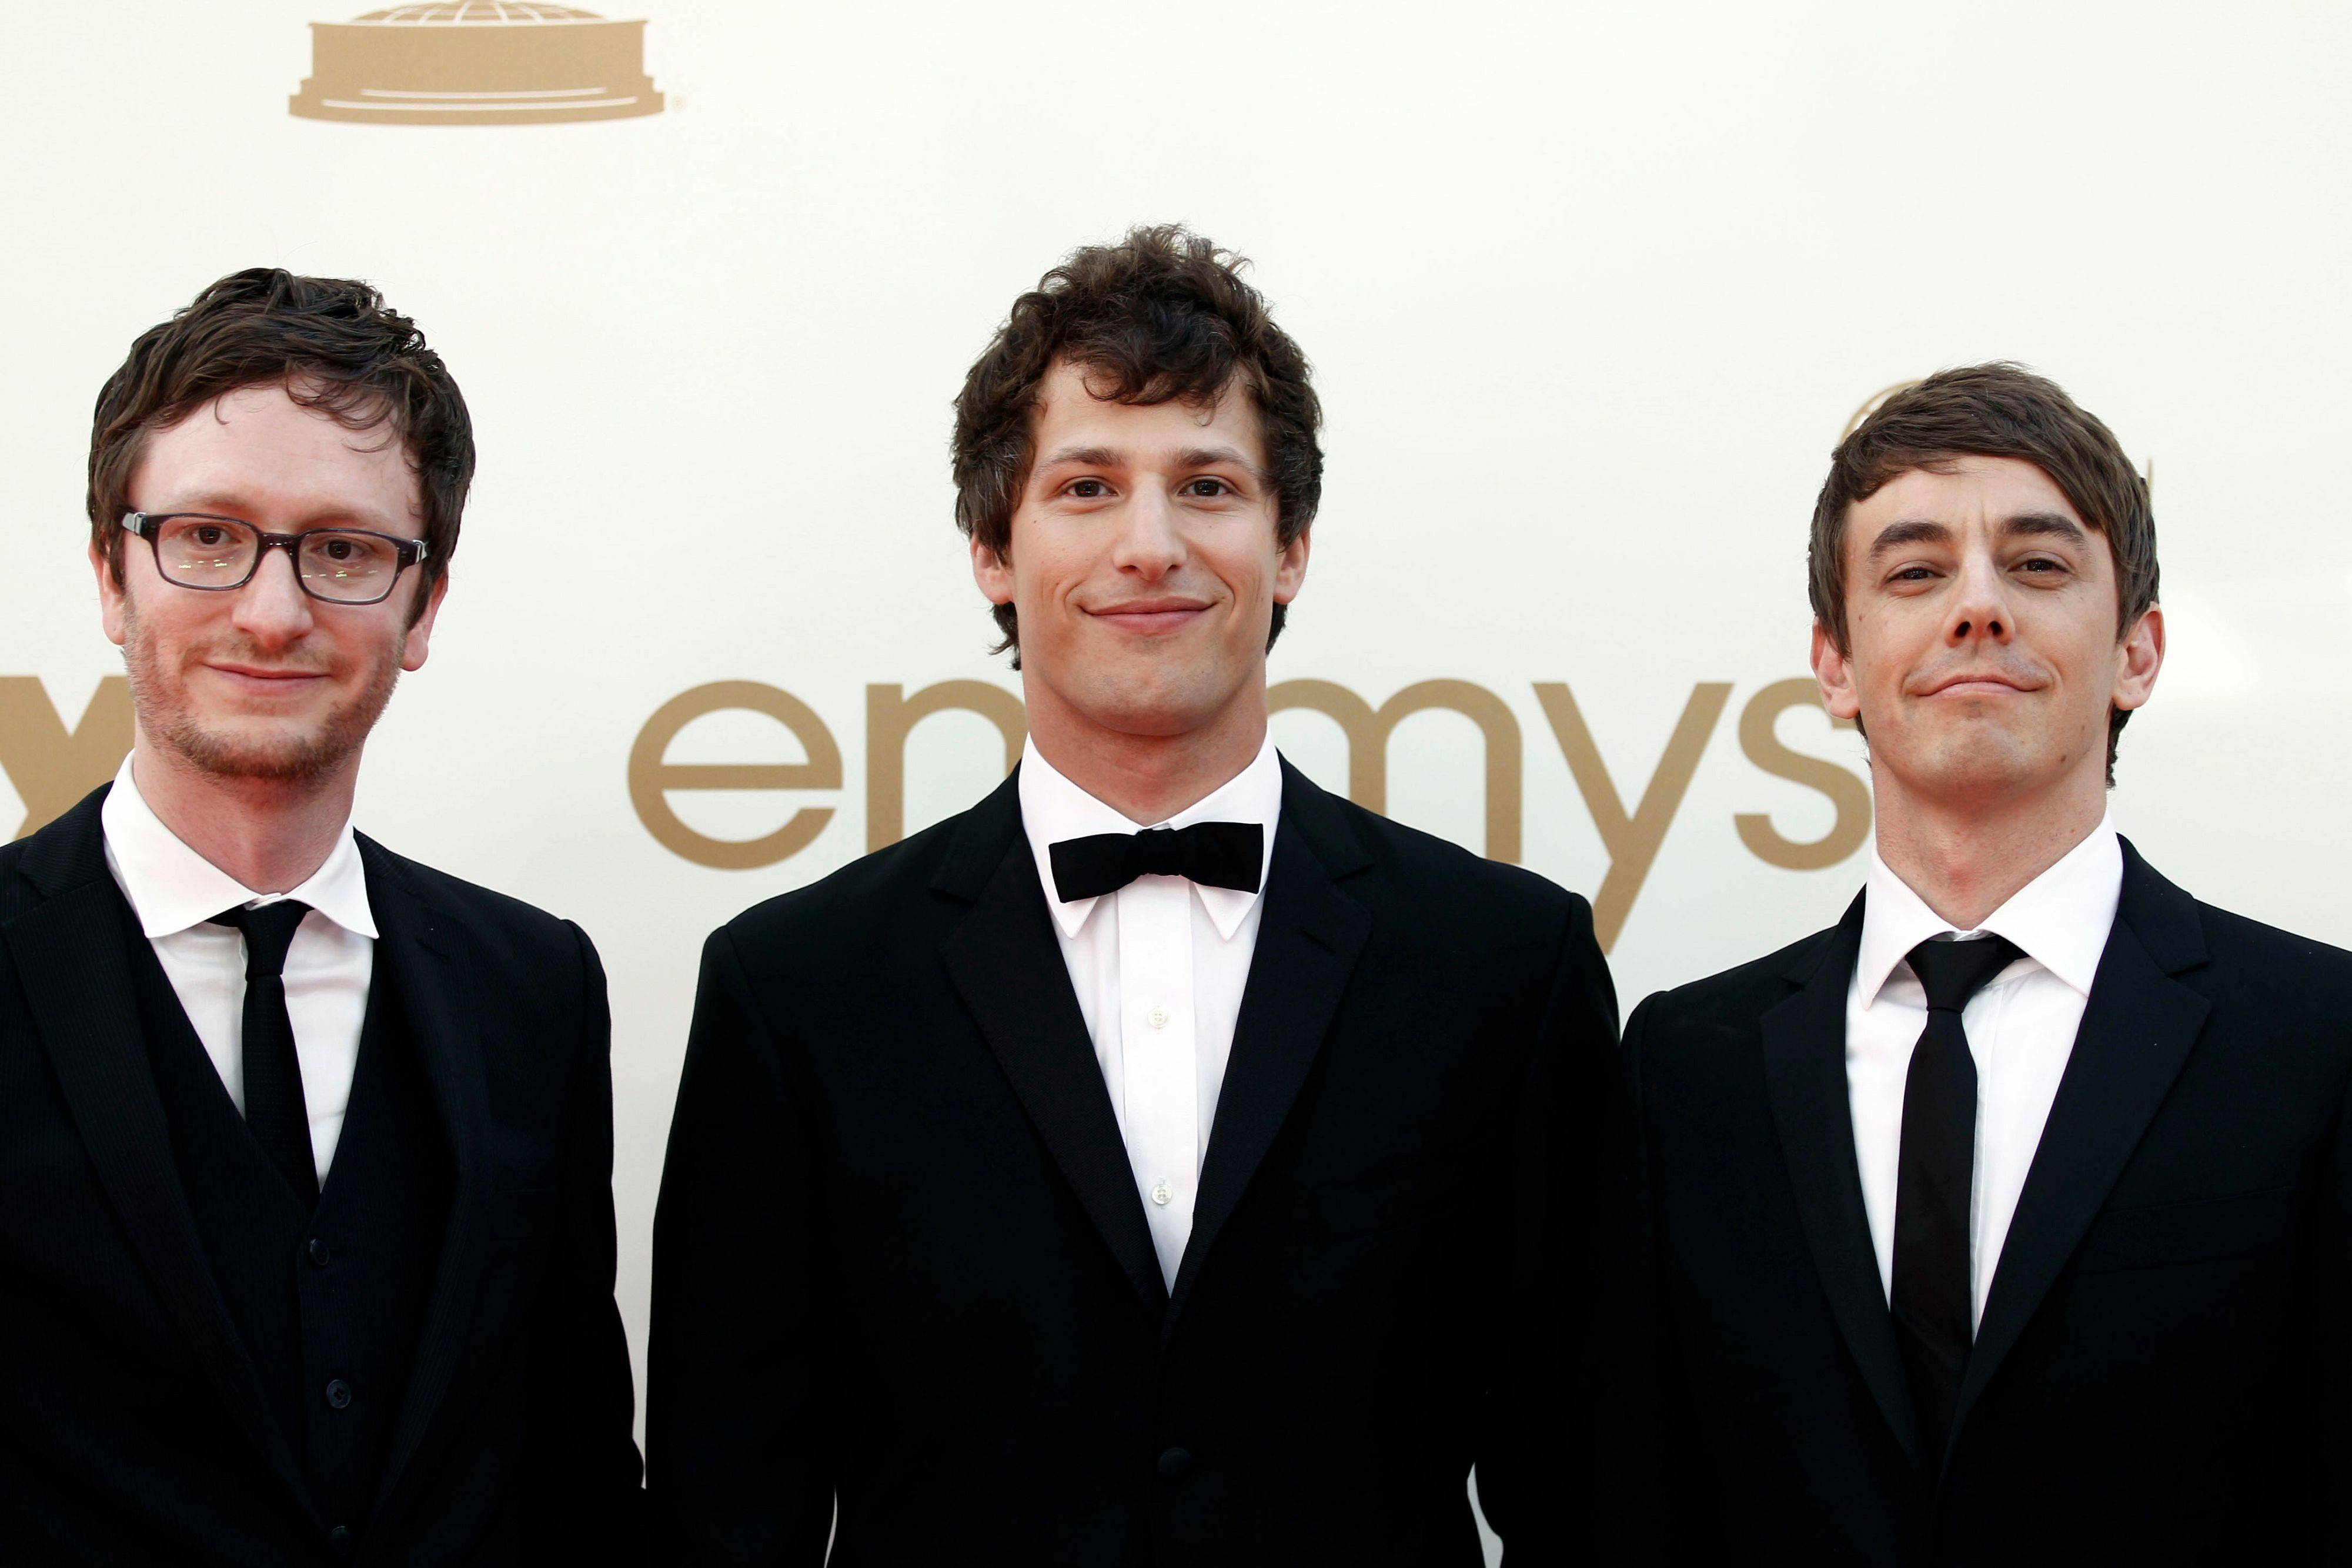 From left, Akiva Schaffer, Andy Samberg, and Jorma Taccone alka The Lonley Island walk the press line before the Emmy Awards. The trio was slated to perform during the ceremony.